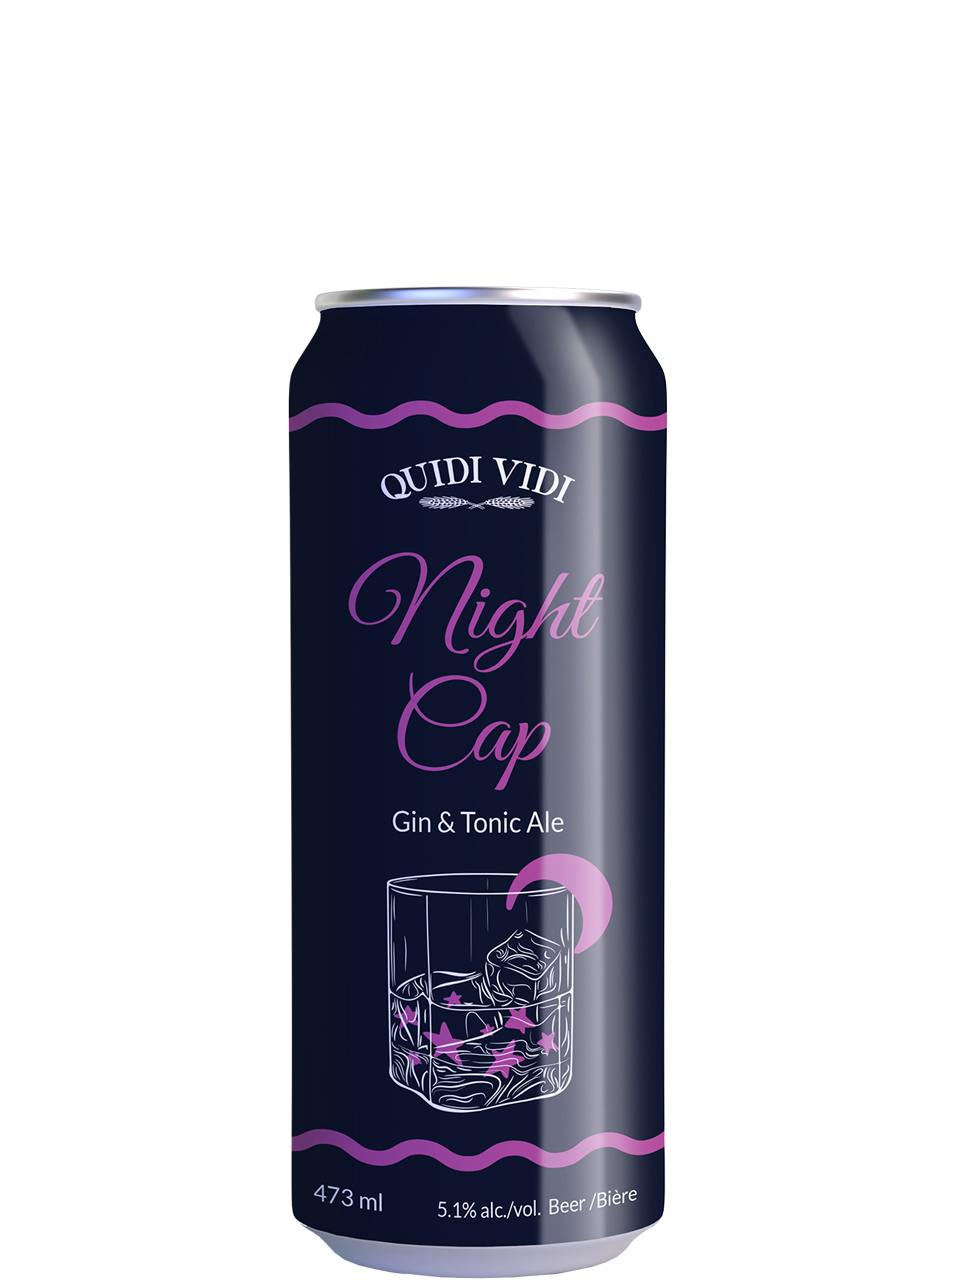 Quidi Vidi Night Cap Gin & Tonic Ale 473ml Can